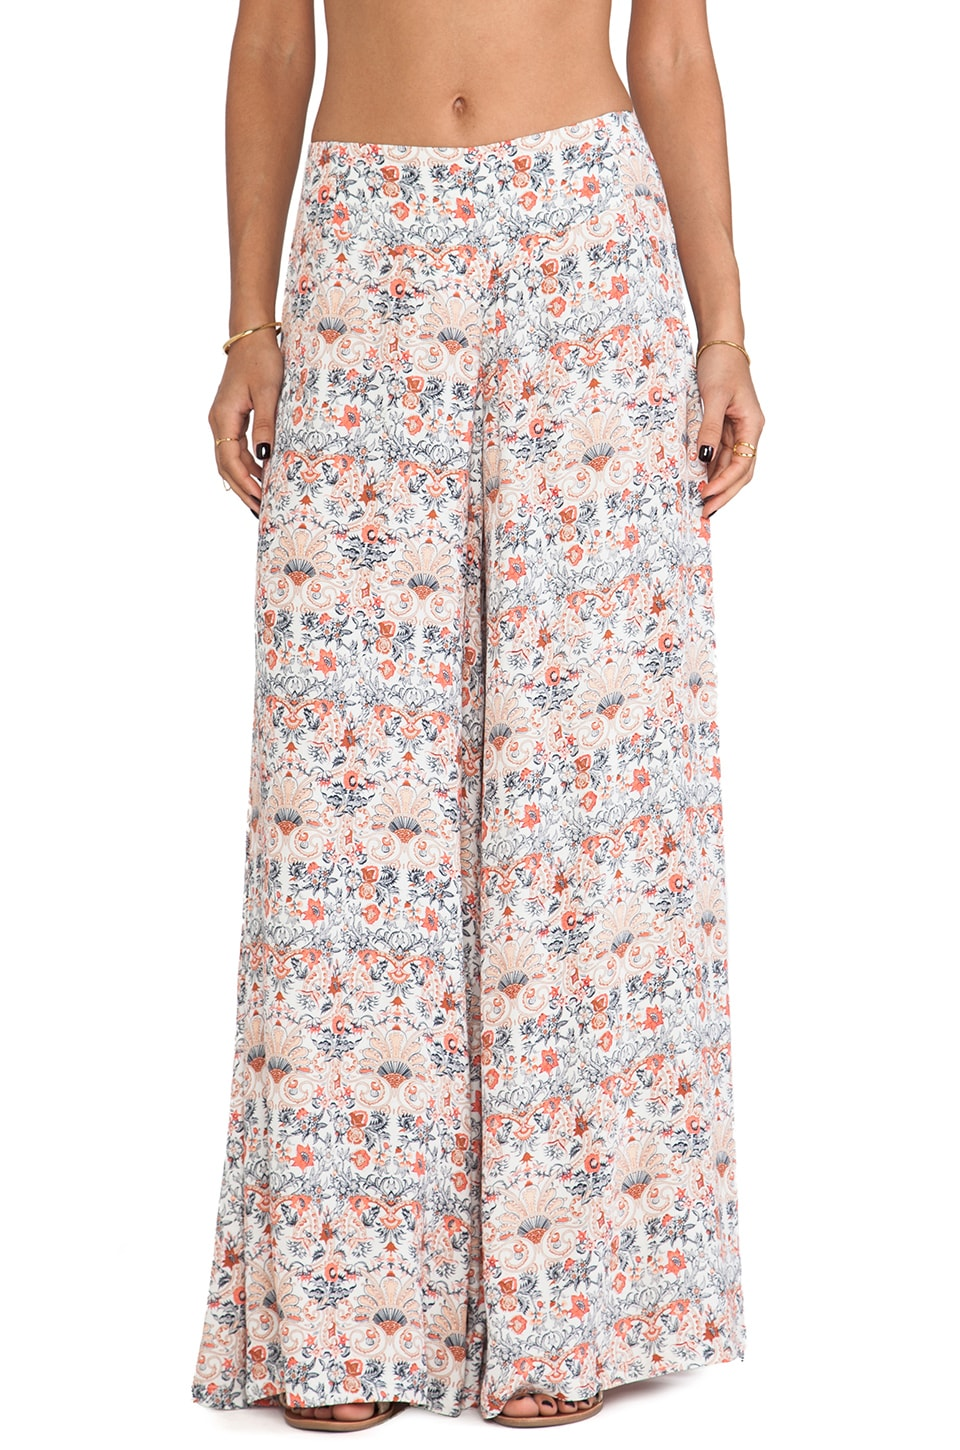 Tigerlily Italienne Floral Pants in Vanilla